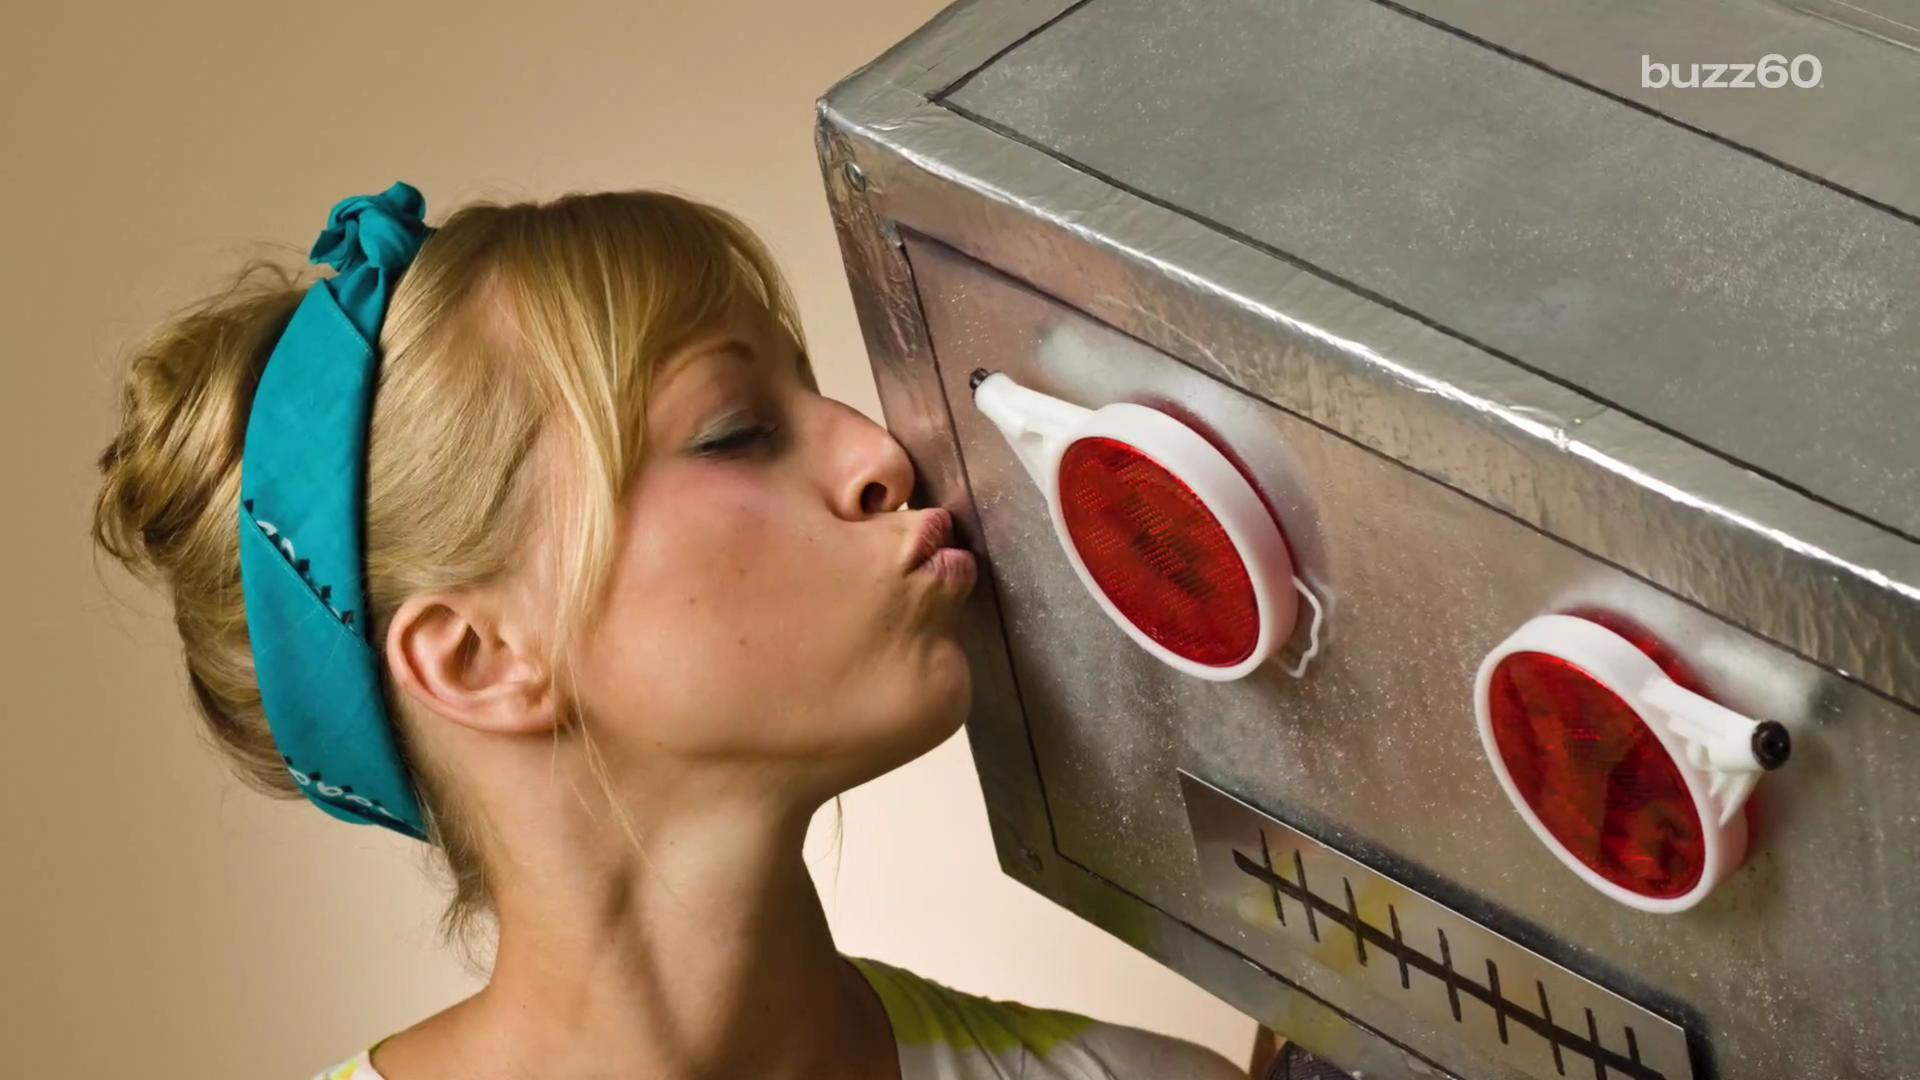 A surprising number of people would date robots